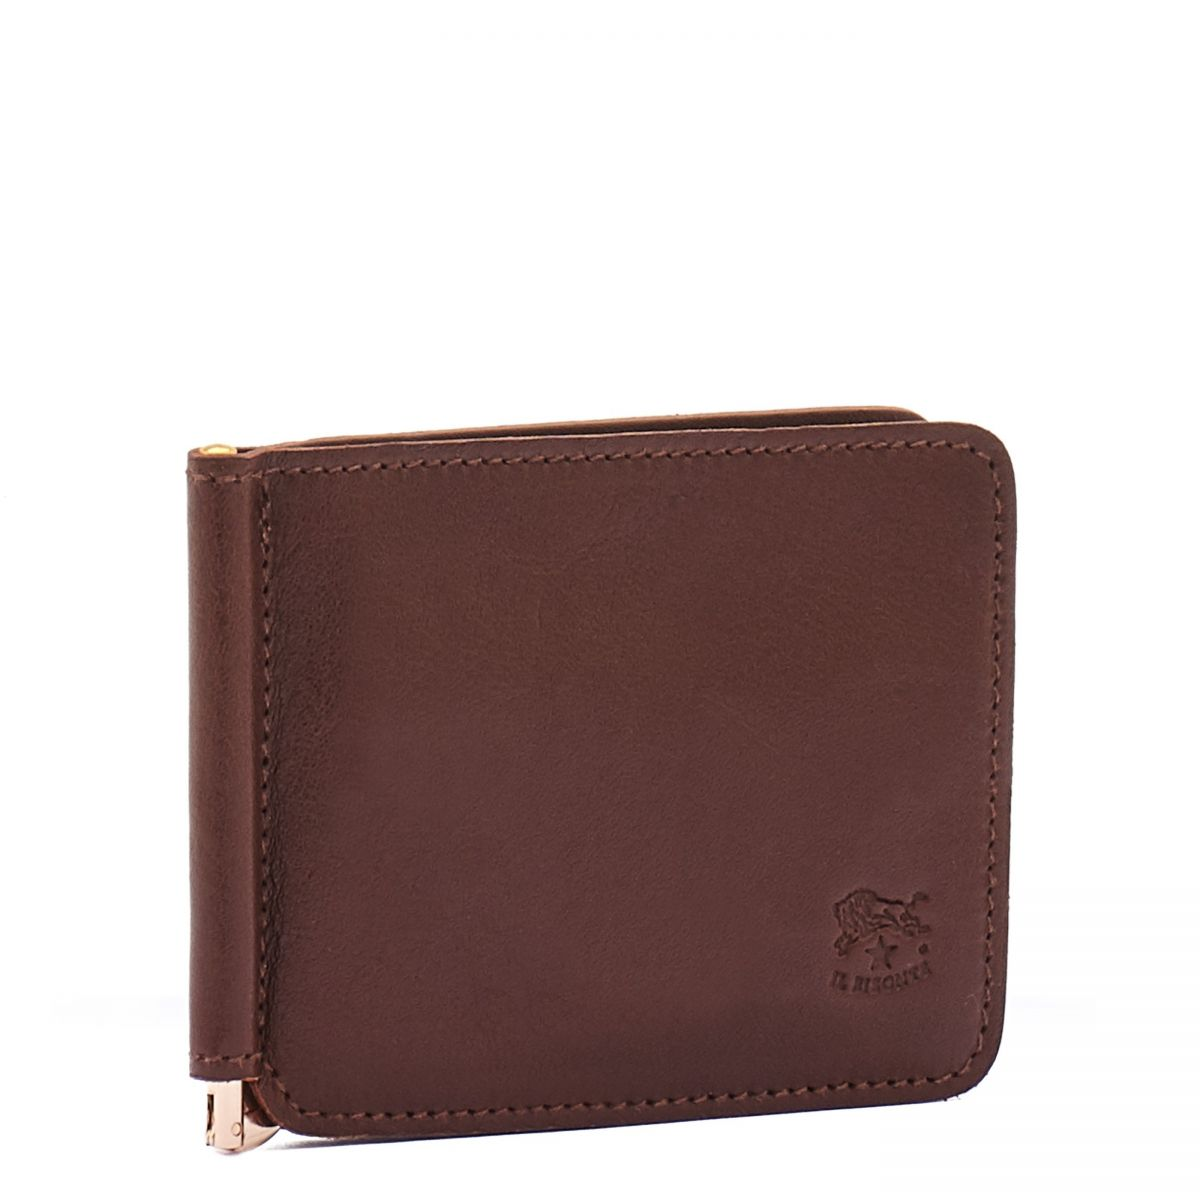 Men's Wallet  in Cowhide Double Leather SMW076 color Brown | Details